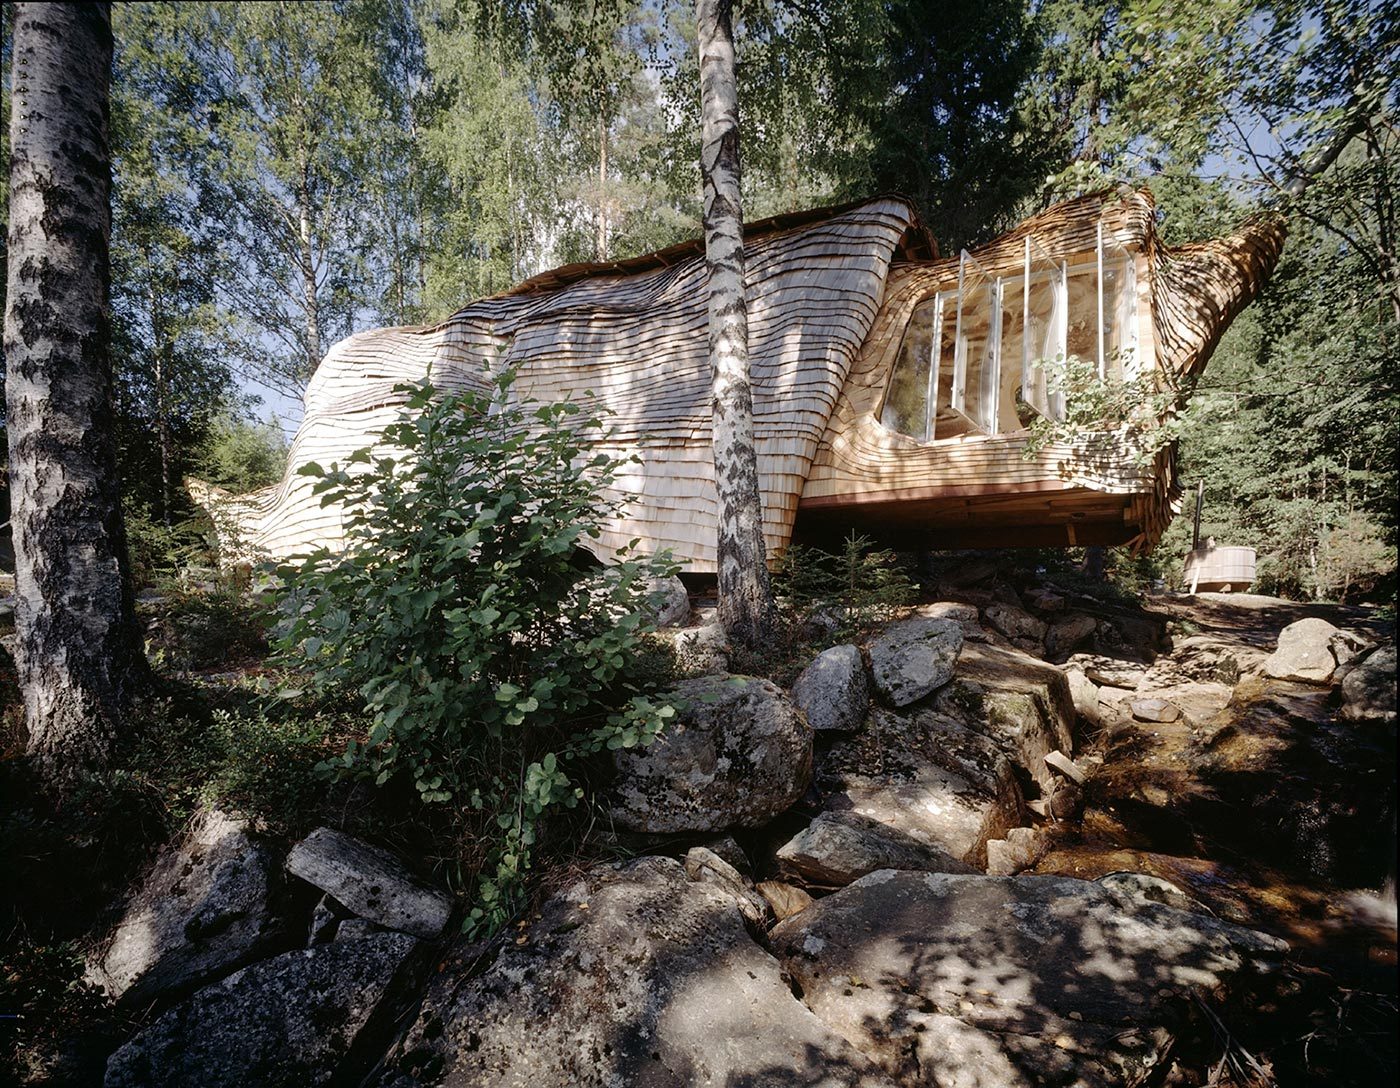 Incredible architecture of a forest house